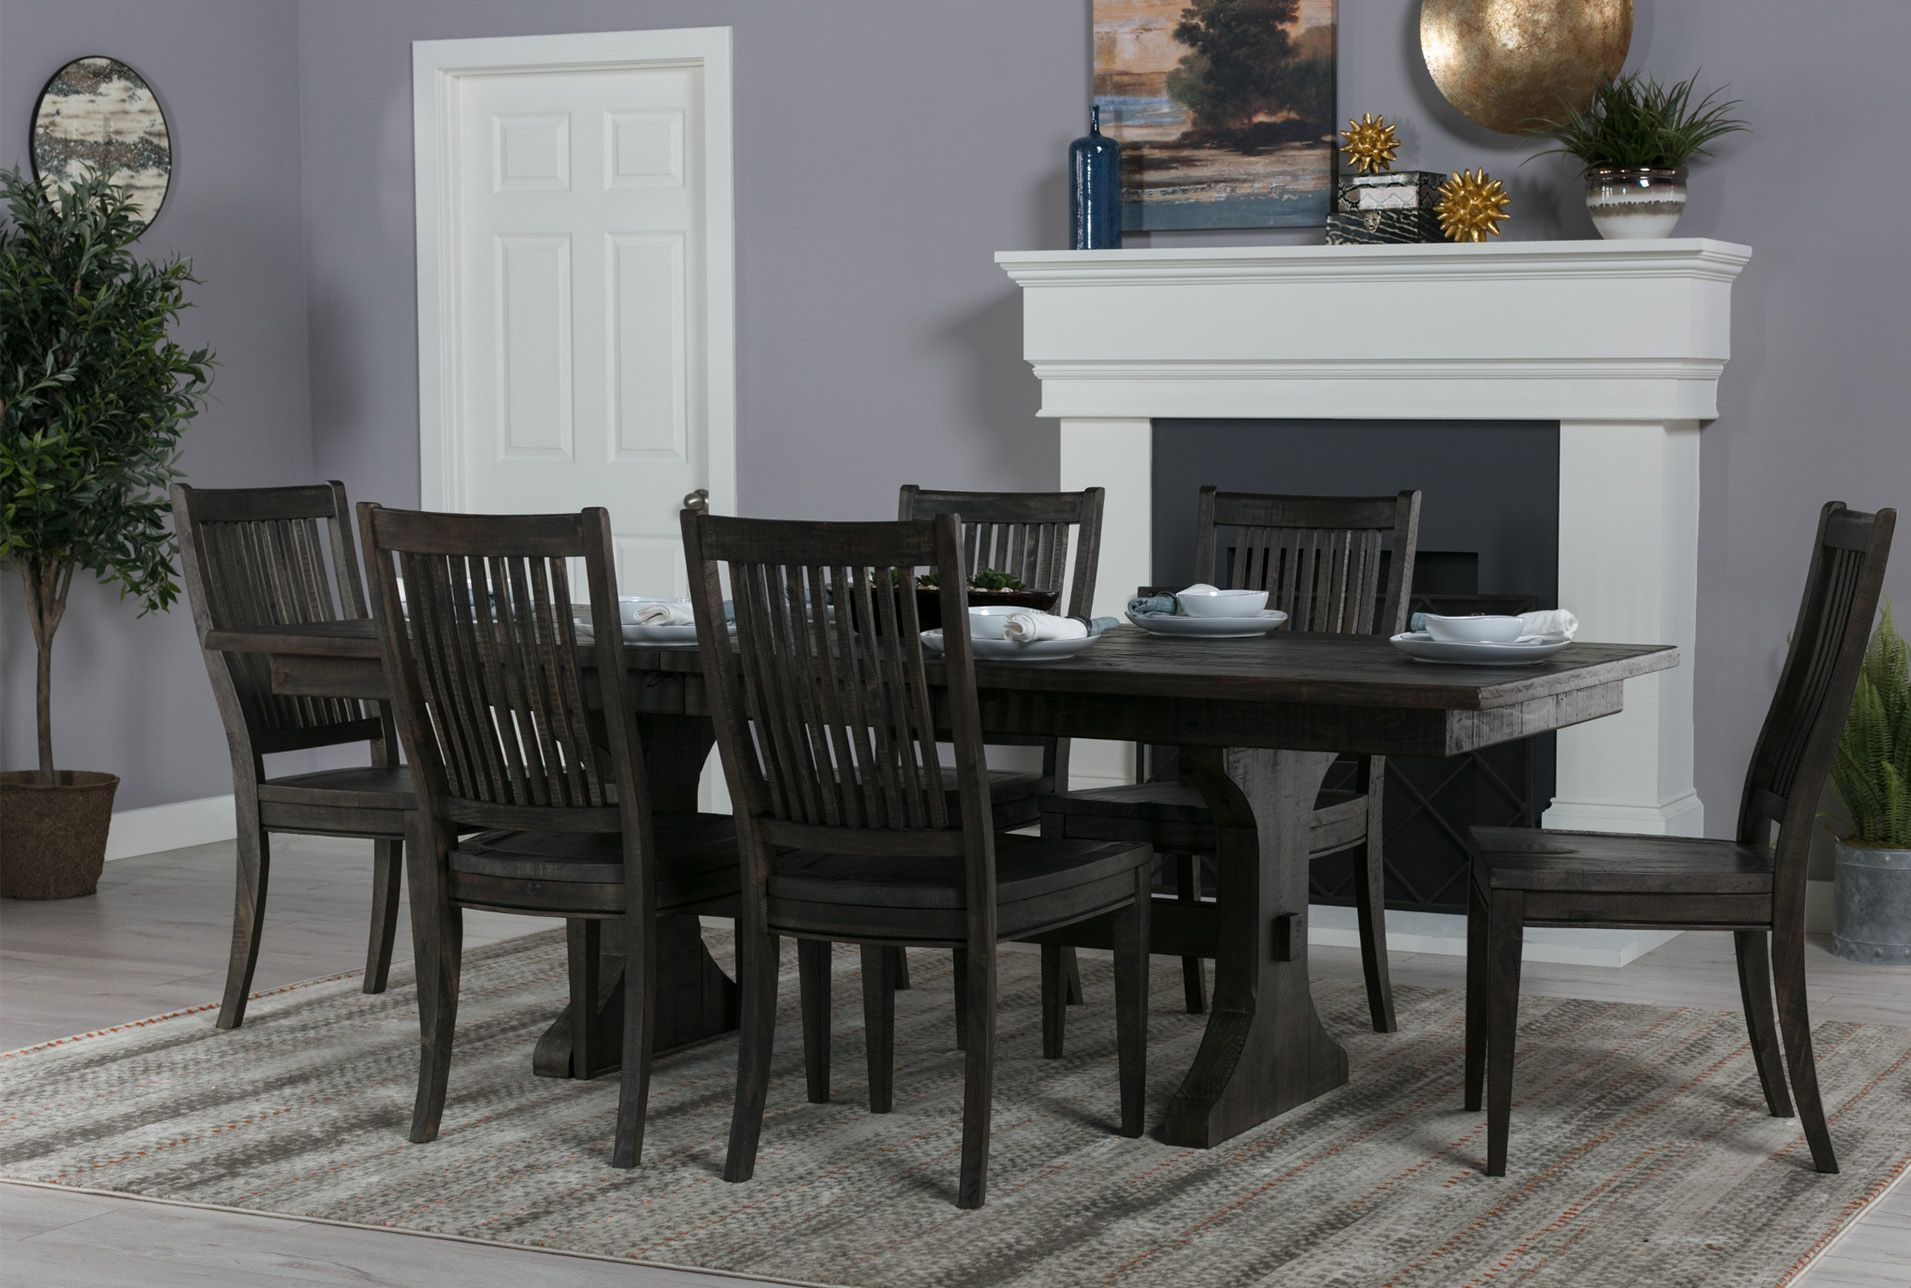 Valencia Extension Trestle Dining Table Grey 750 Dining